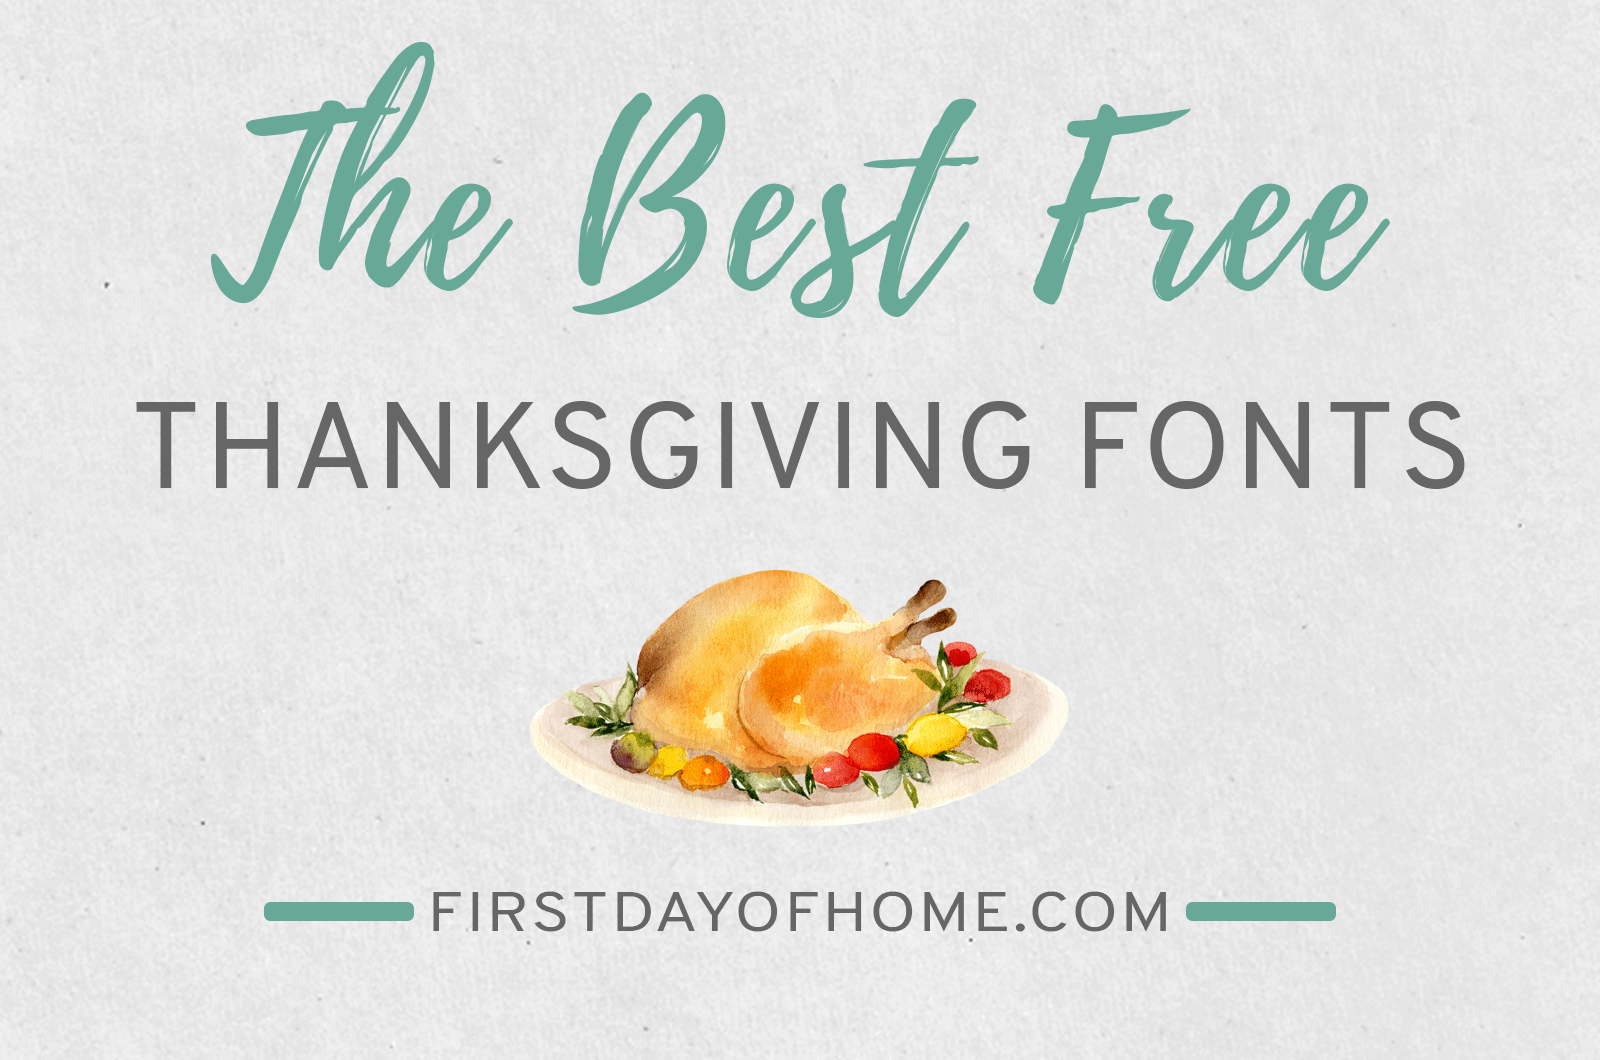 Free Thanksgiving fonts to download and use for crafts, printables and design projects.